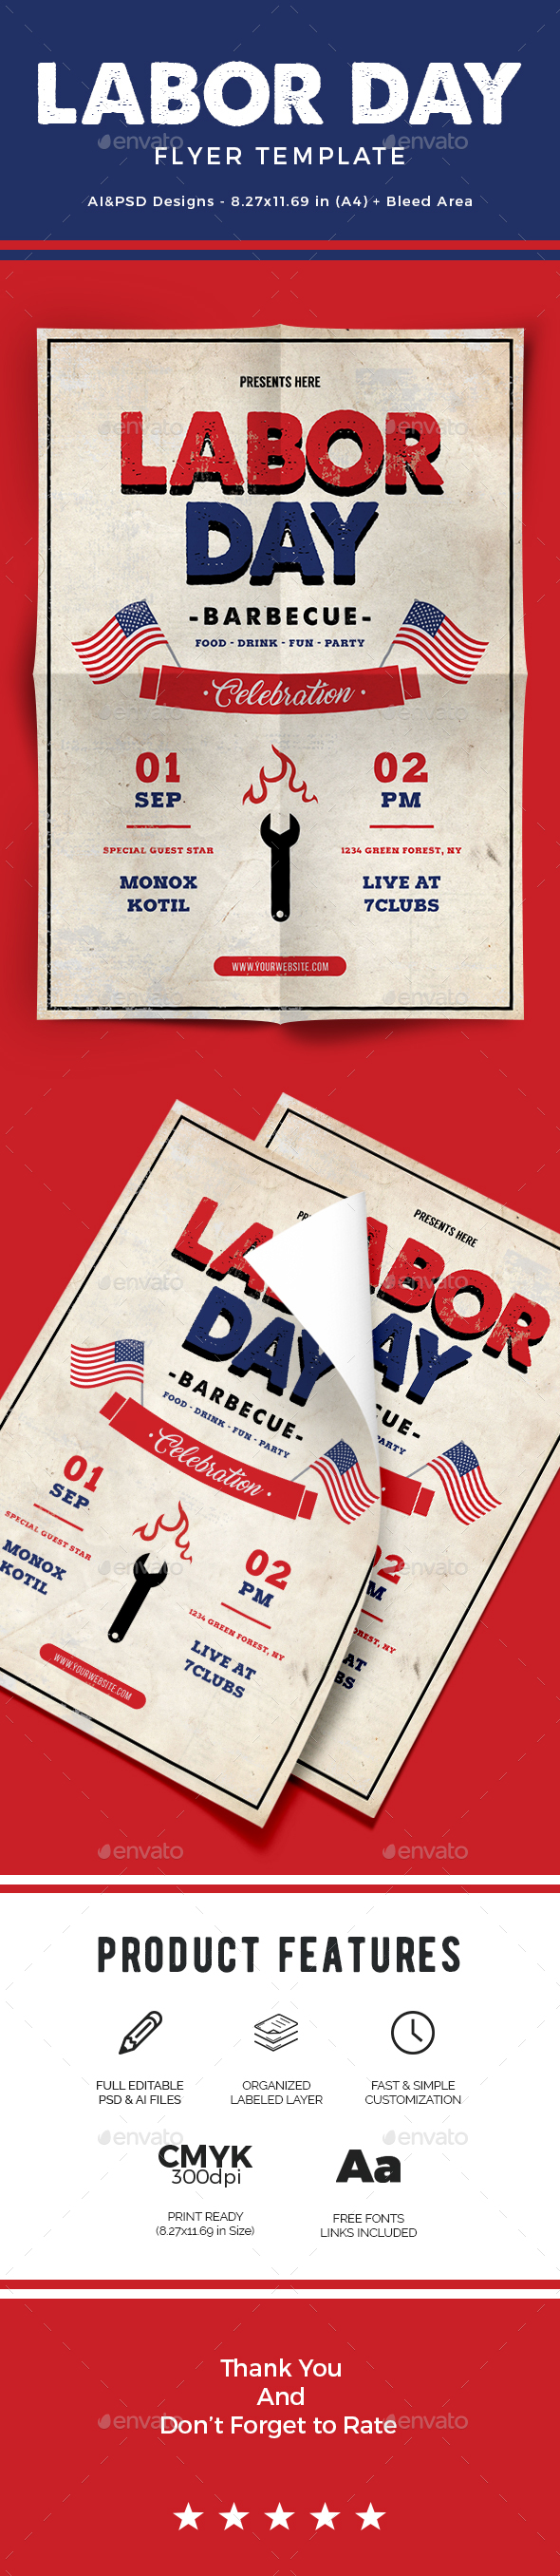 Labor Day Flyer Template PSD, AI Illustrator. Download Here: Https://